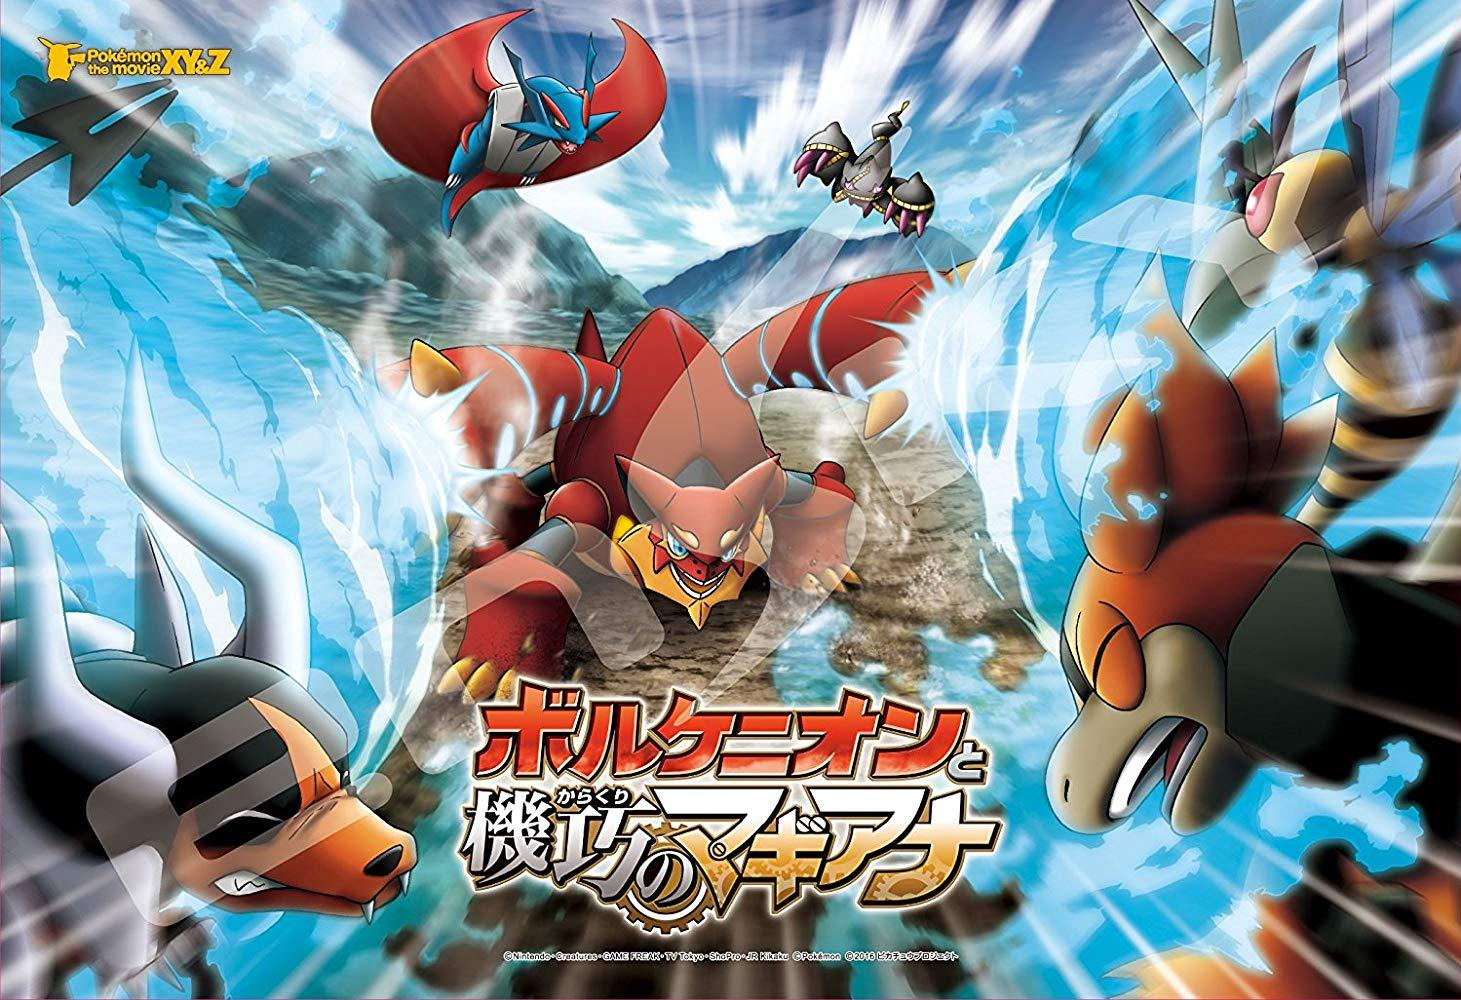 مشاهدة فيلم Pokemon the Movie: Volcanion and the Mechanical Marvel (2016) مترجم HD اون لاين